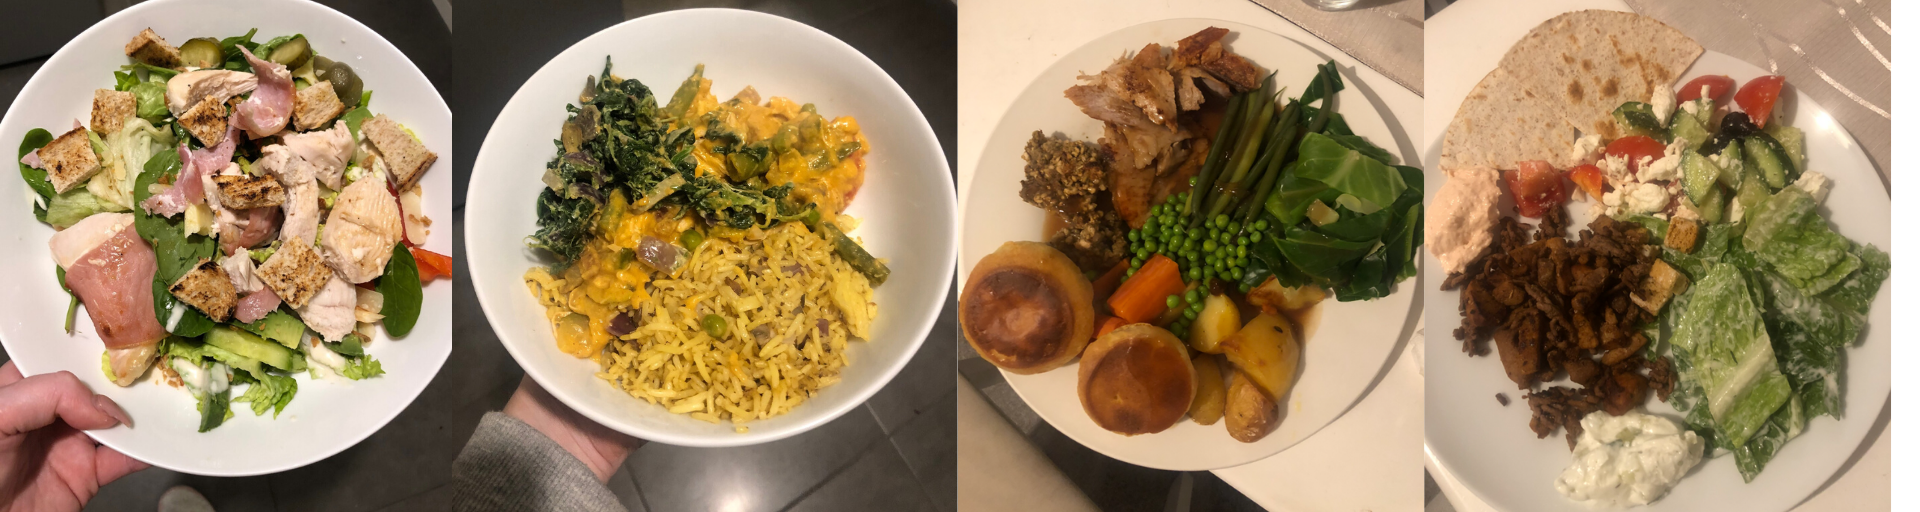 Some examples of the healthy meals I've been eating